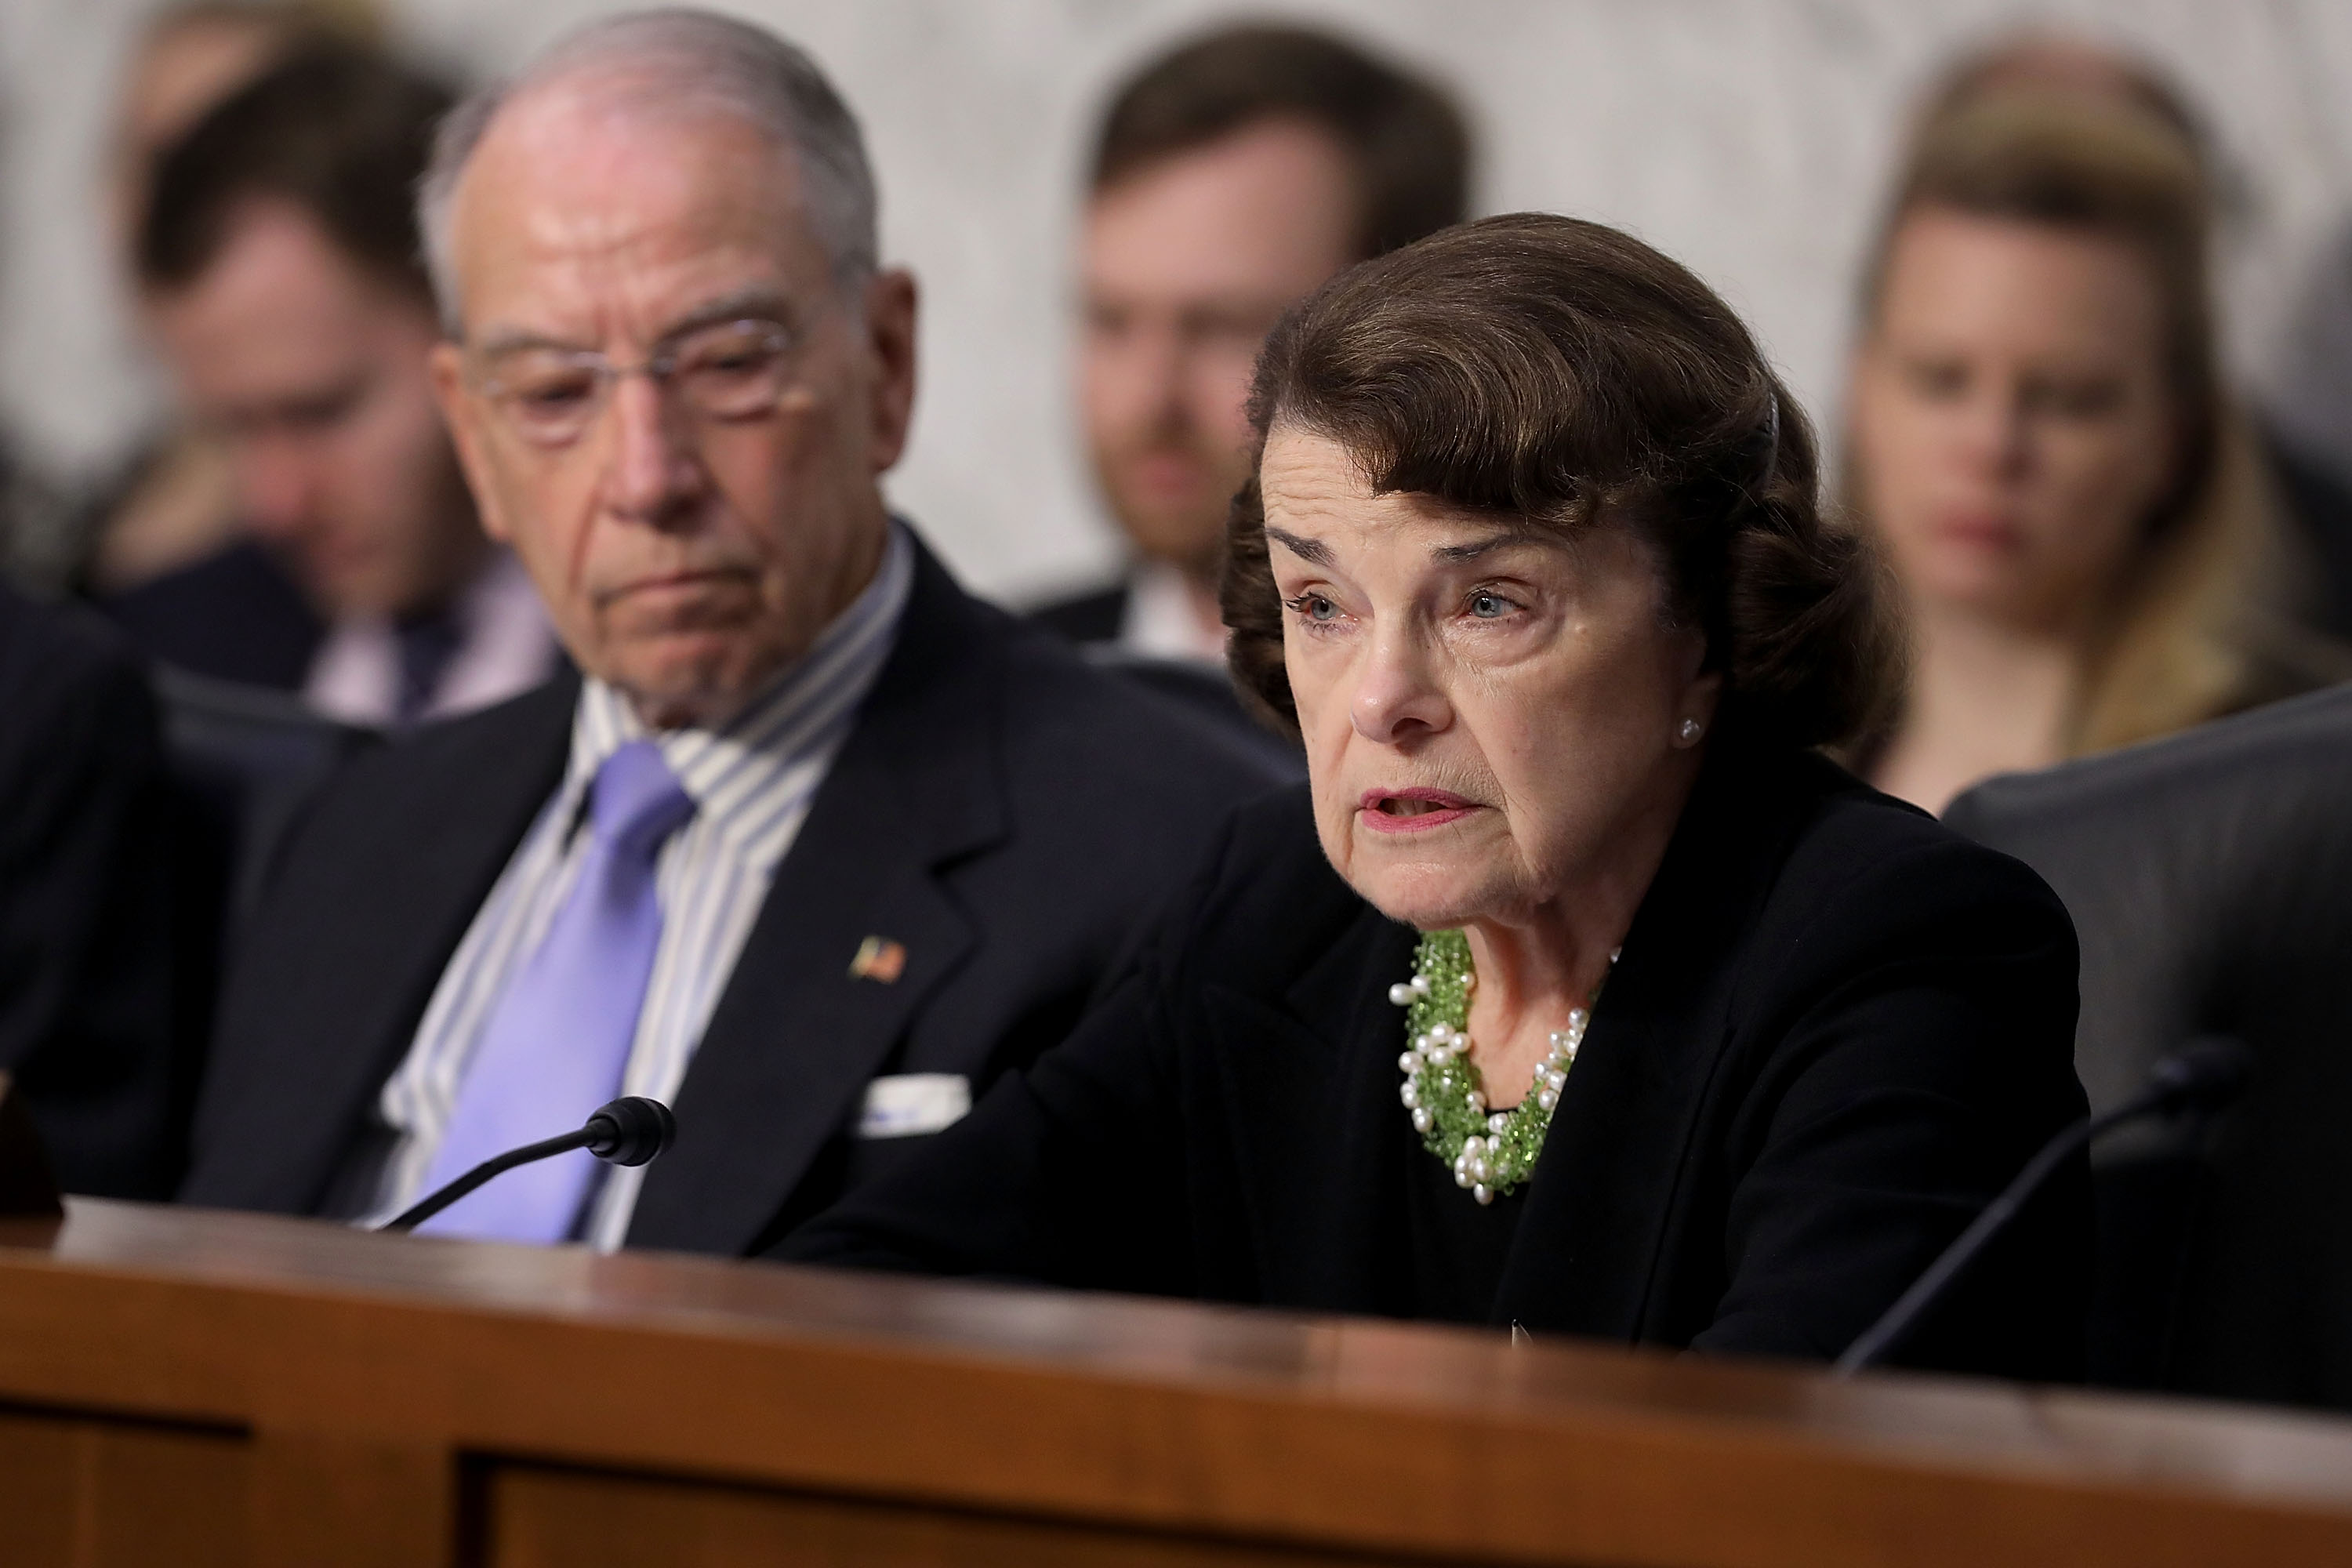 Senate Judiciary Committee ranking member Dianne Feinstein (D-CA) (R) and Chairman Charles Grassley (R-IA) engage in a debate with fellow members of the committee during the third day of Supreme Court nominee Judge Brett Kavanaugh's confirmation hearing in the Hart Senate Office Building on Capitol Hill September 6, 2018 in Washington, DC. Kavanaugh was nominated by President Donald Trump to fill the vacancy on the court left by retiring Associate Justice Anthony Kennedy.